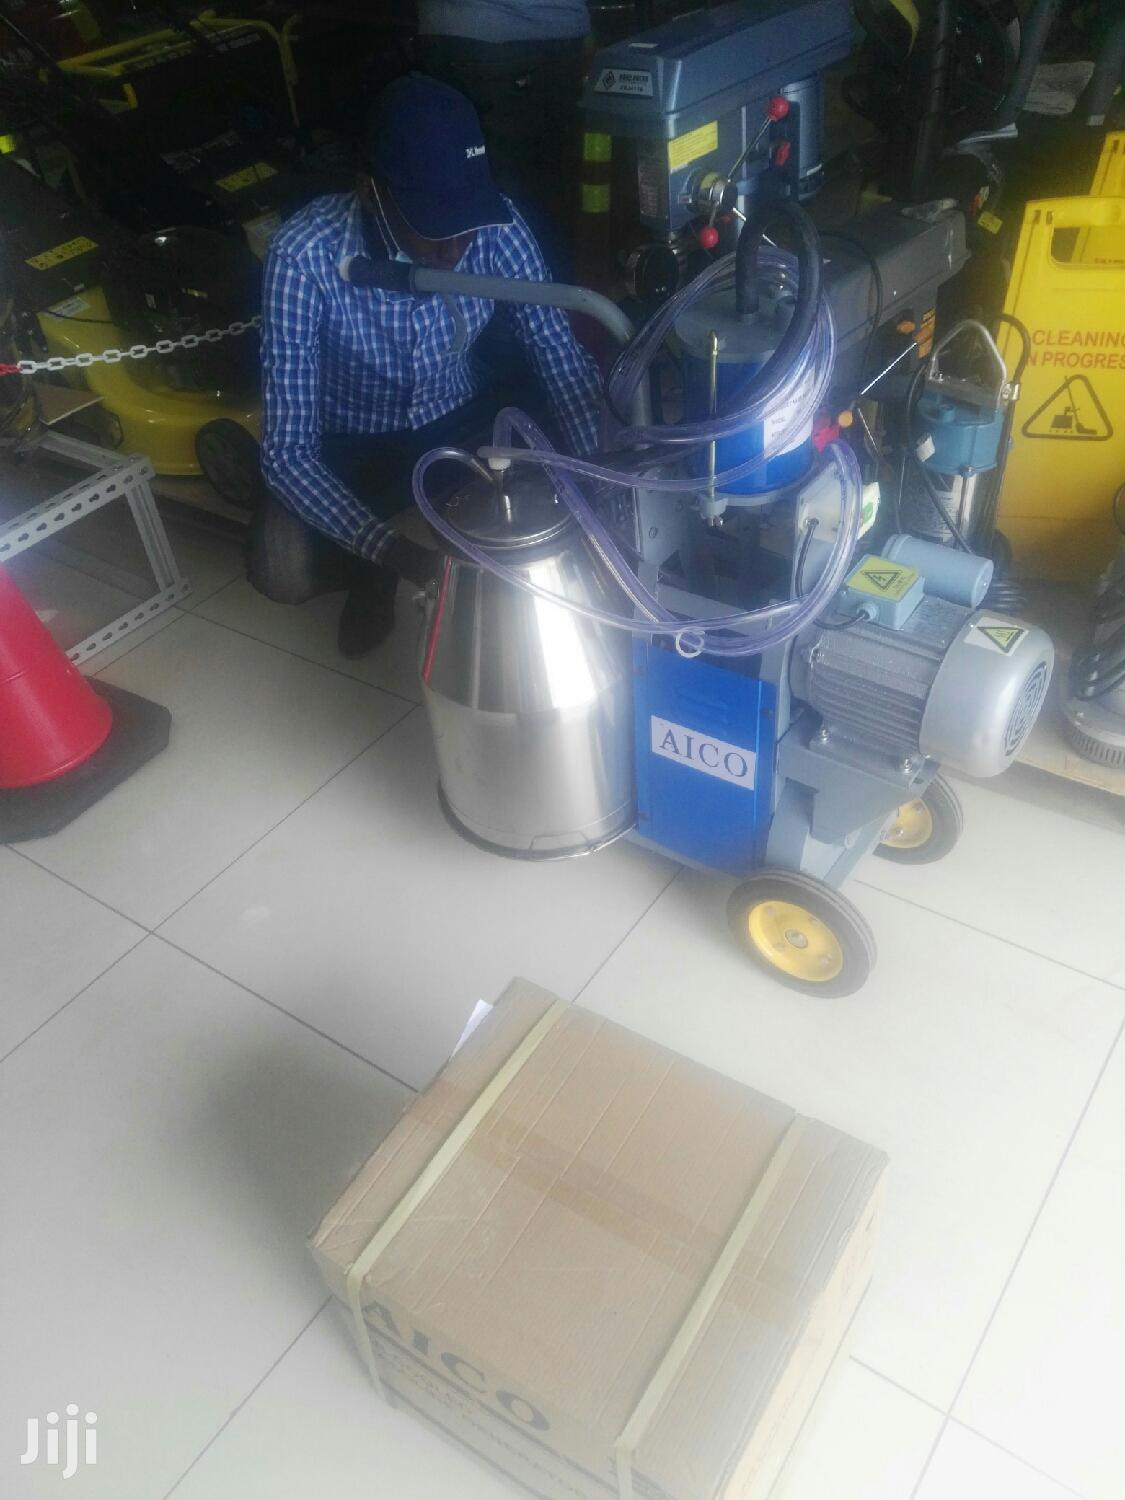 Milking Machine | Farm Machinery & Equipment for sale in Embakasi, Nairobi, Kenya